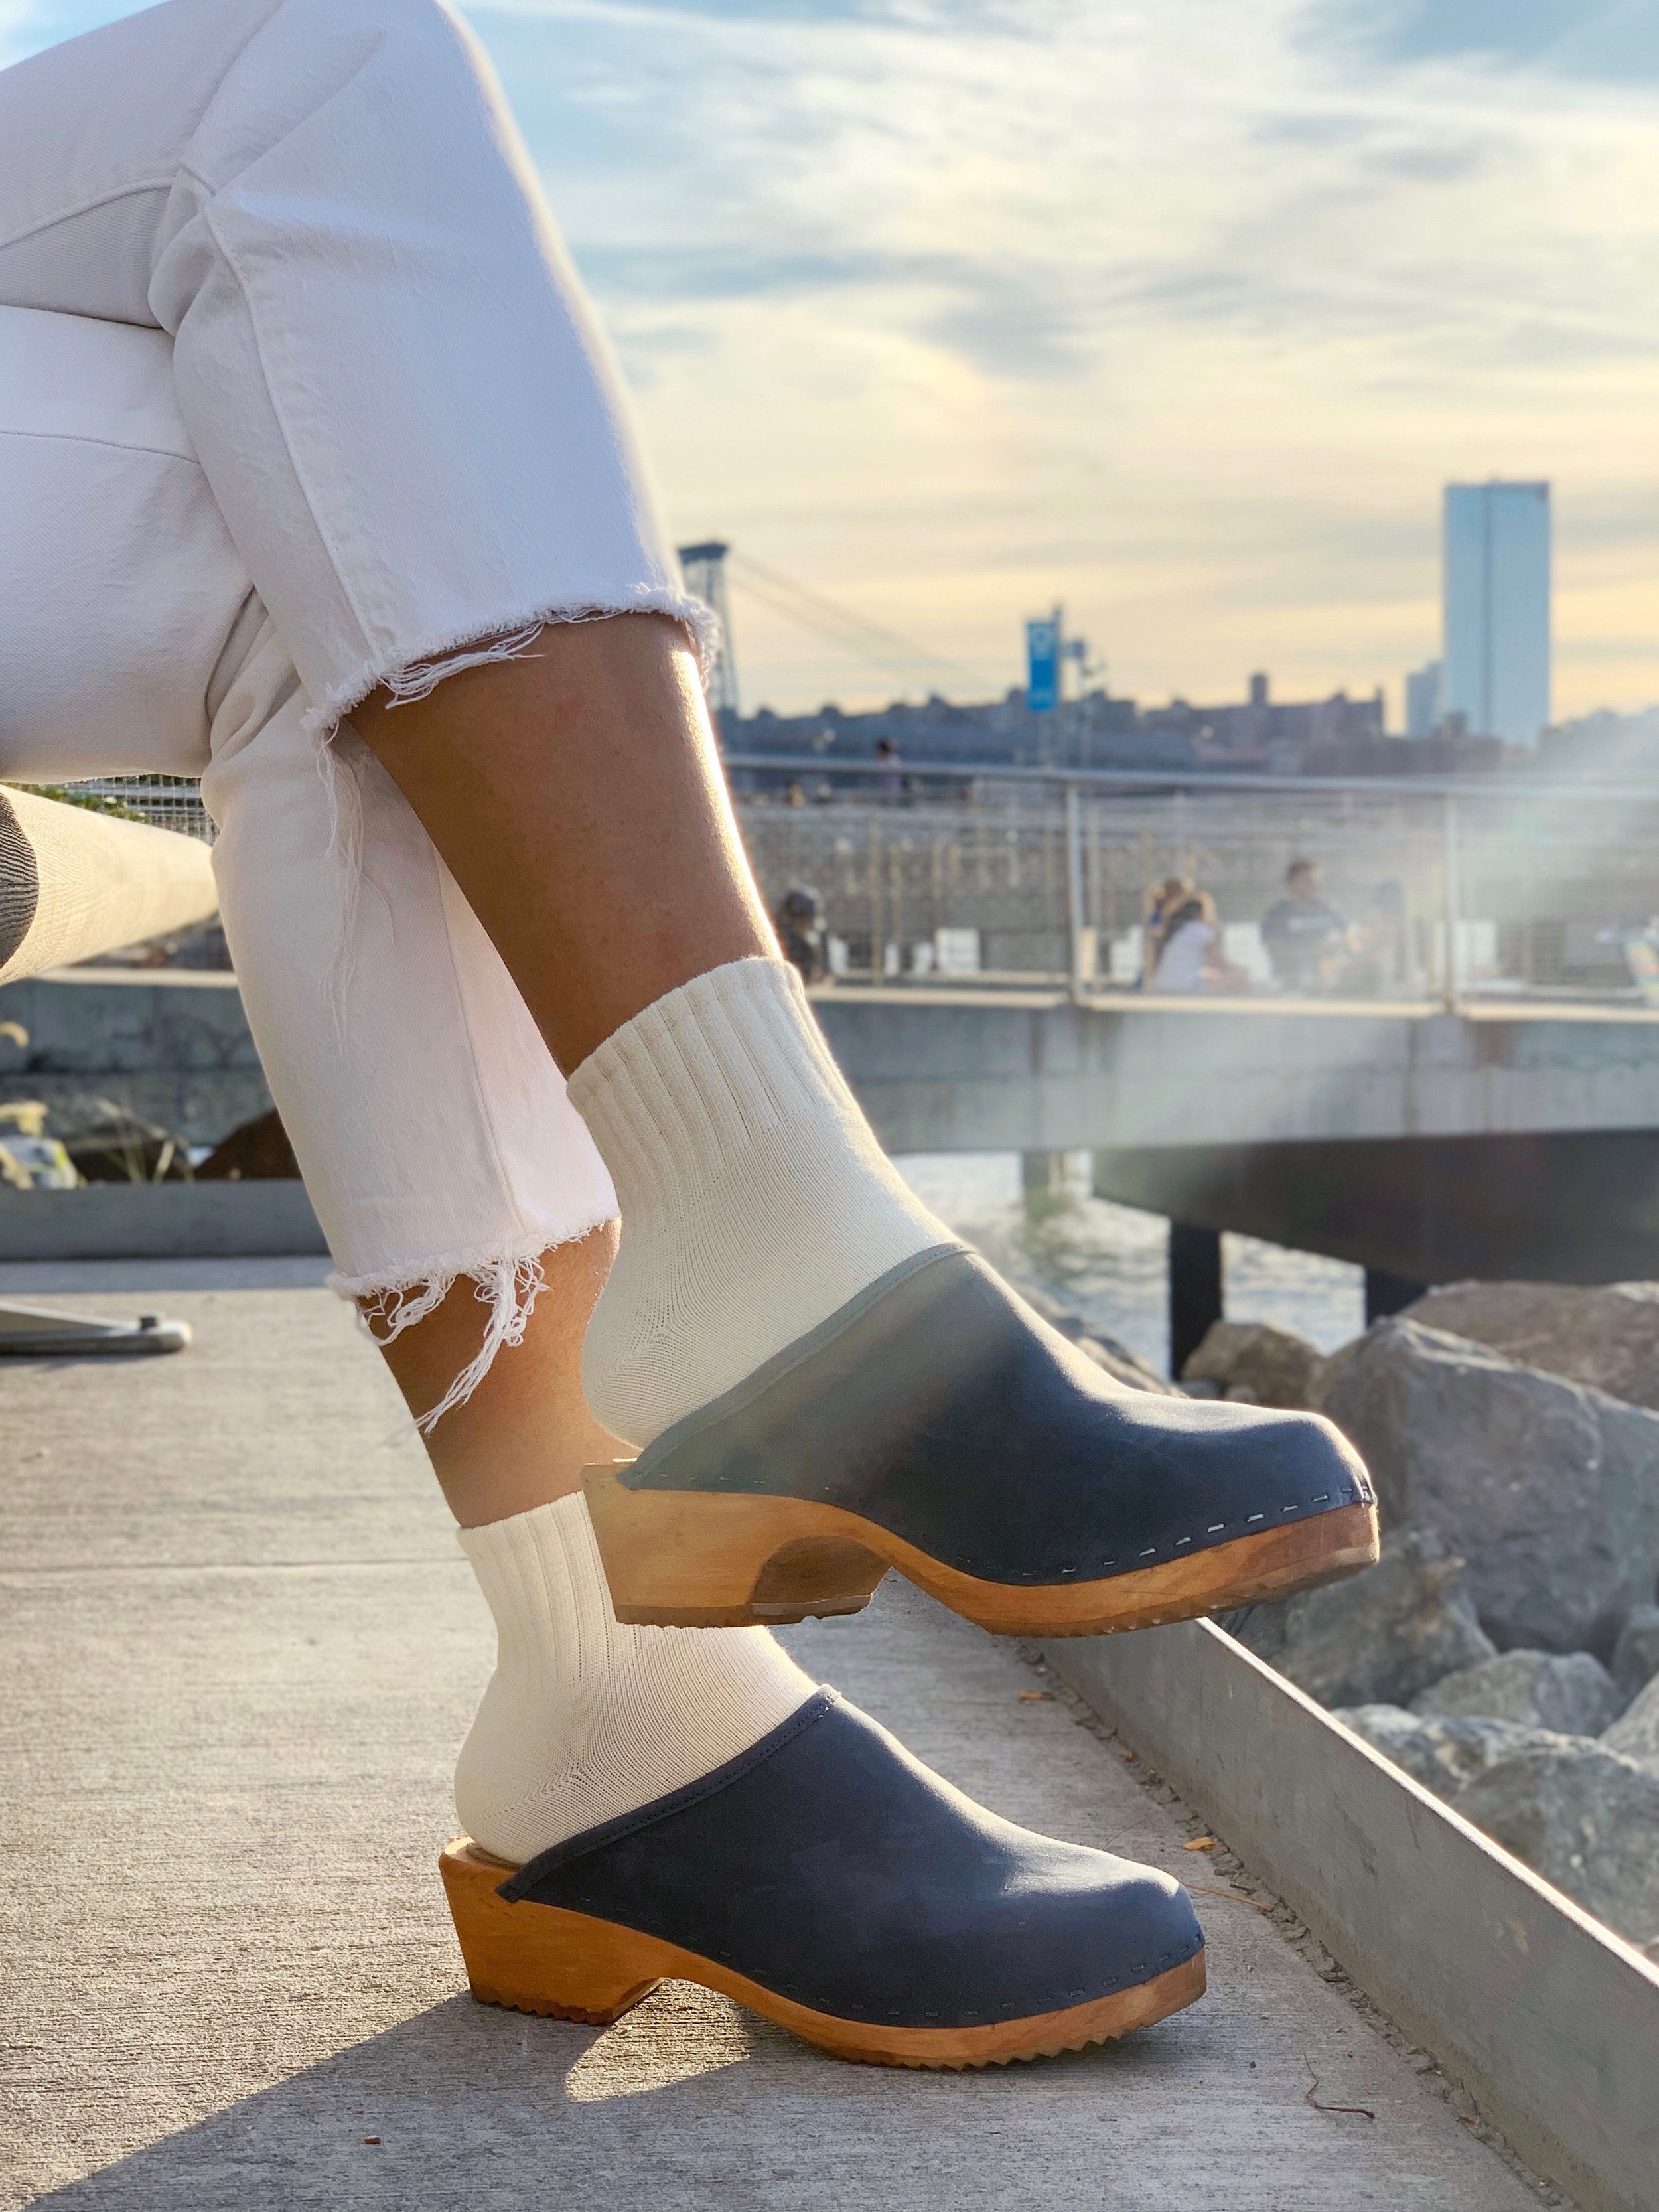 White jeans, cream socks, and dark blue Tessa clogs photographed in front of city skyline/waters edge